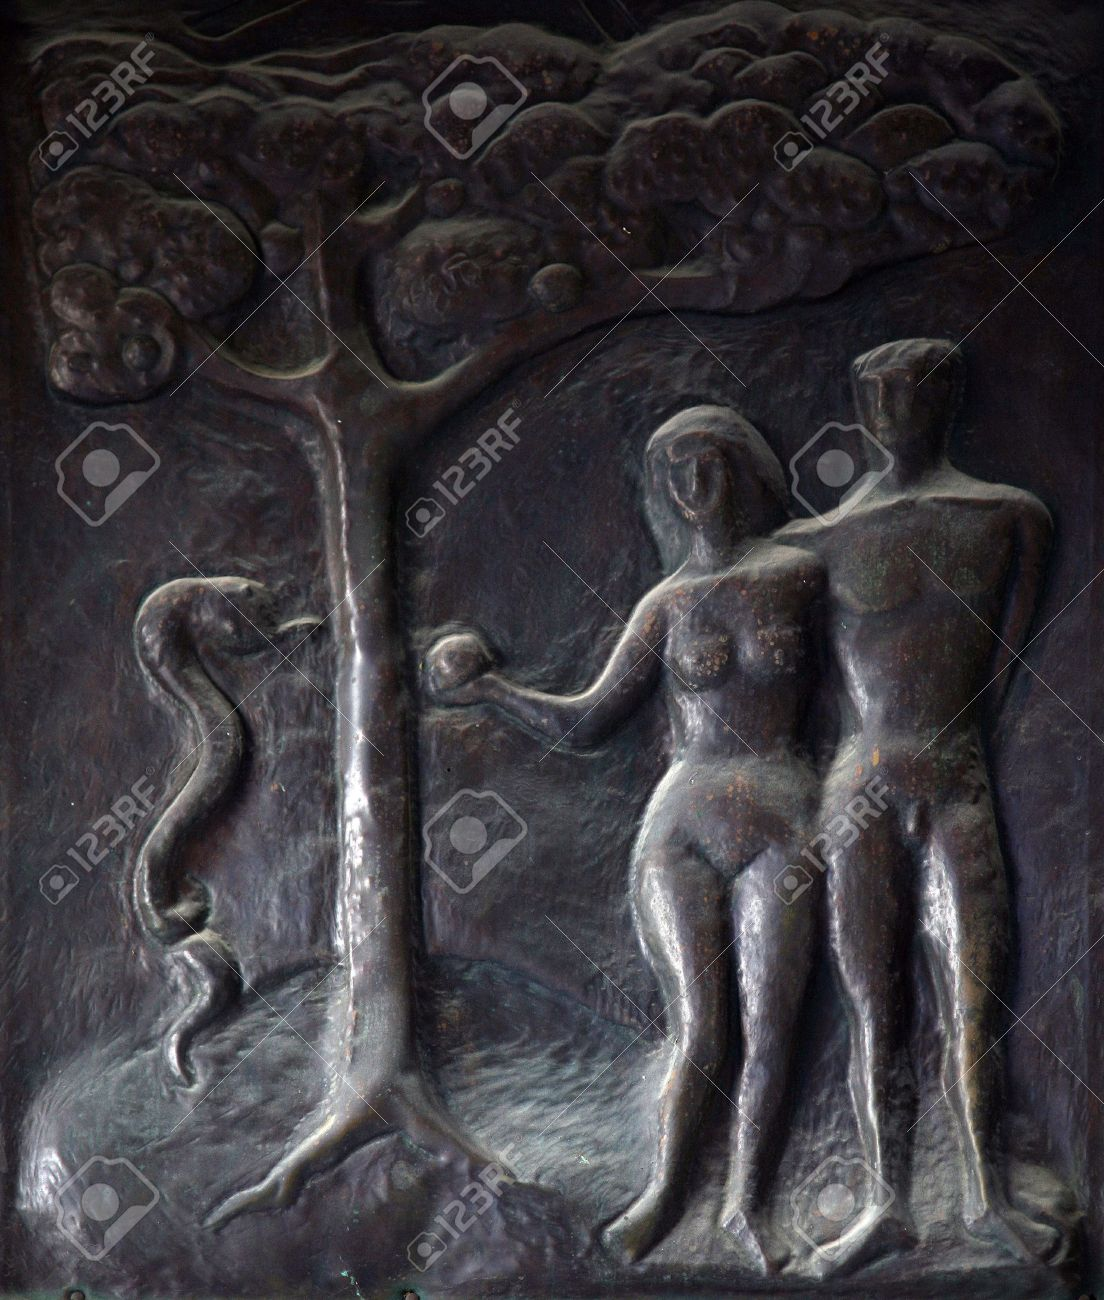 Adam and Eve, Illustrations of stories from the Bible on doors Basilica of the Annunciation in Nazareth Stock Photo - 10005058